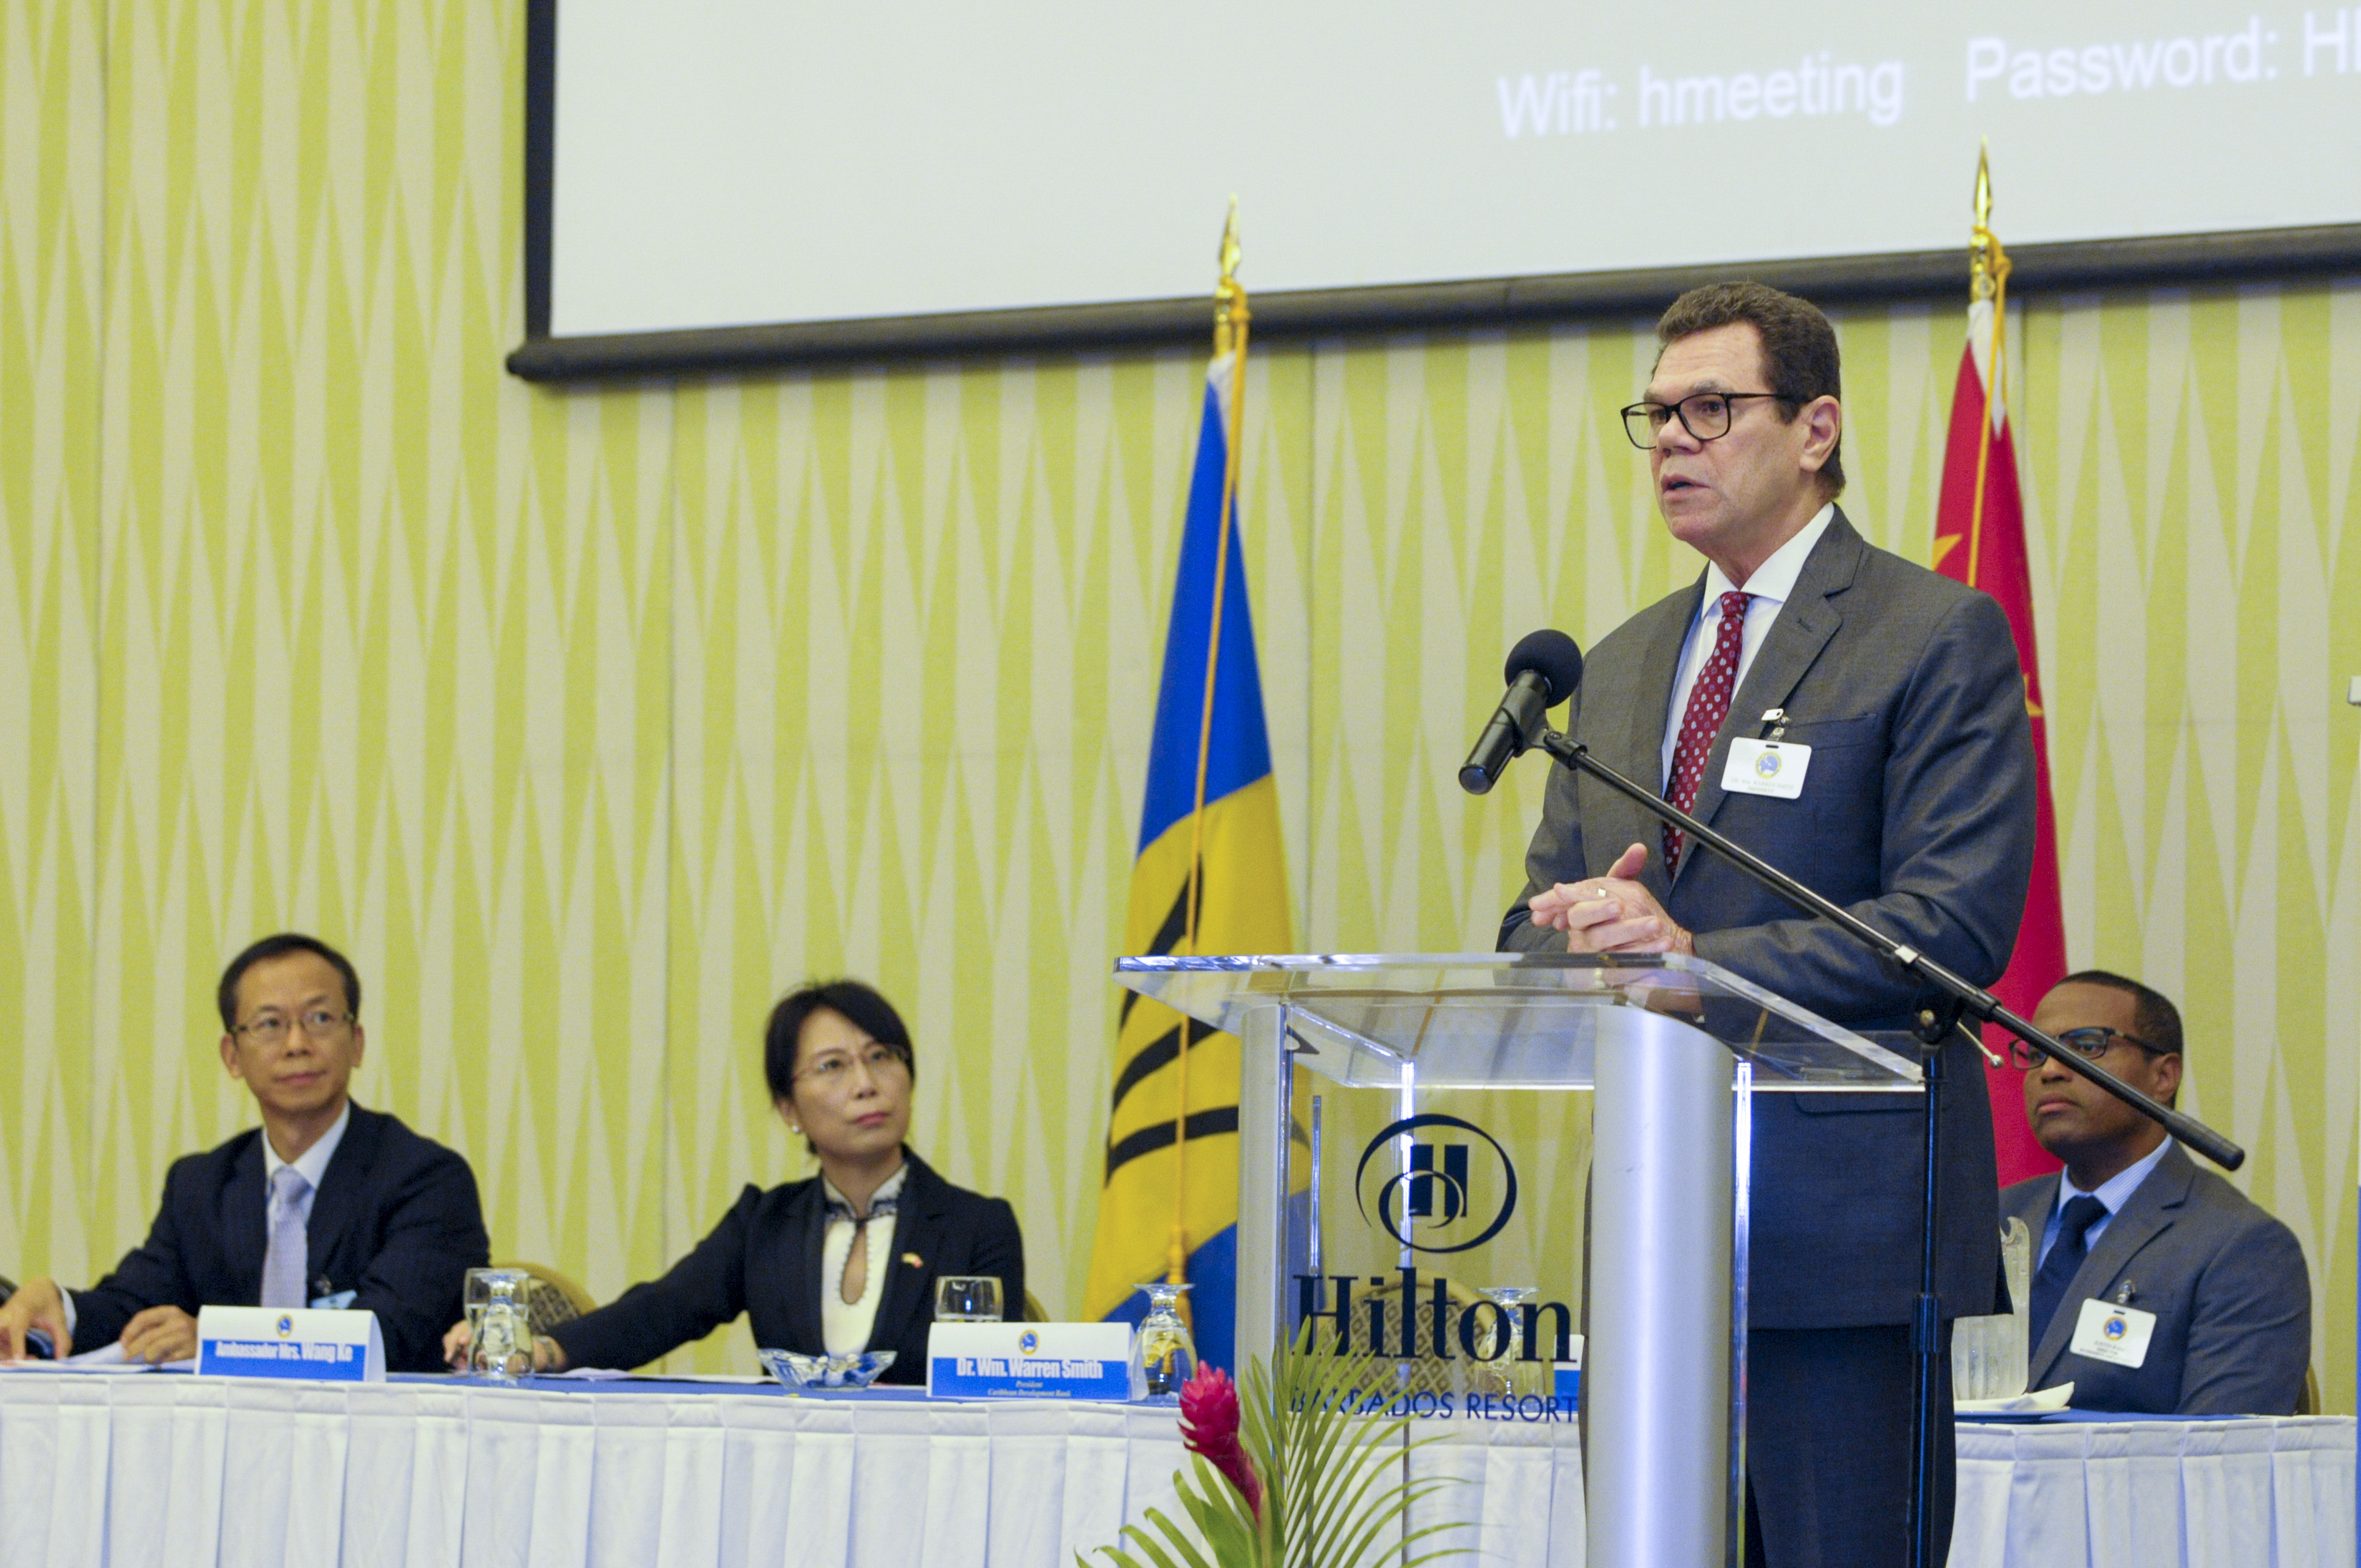 Dr. Warren Smith, President, CDB, speaking at the opening ceremony on July 10, 2017. Looking on are (L-R) Dr. Wen Xinxiang, Secretary General, Monetary Policy Committee, Director General, Monetary Policy Department, People's Bank of China; Ambassador of the People's Republic of China to Barbados, H.E. Wang Ke and Dr. Justin Ram, Director, Economics, CDB.